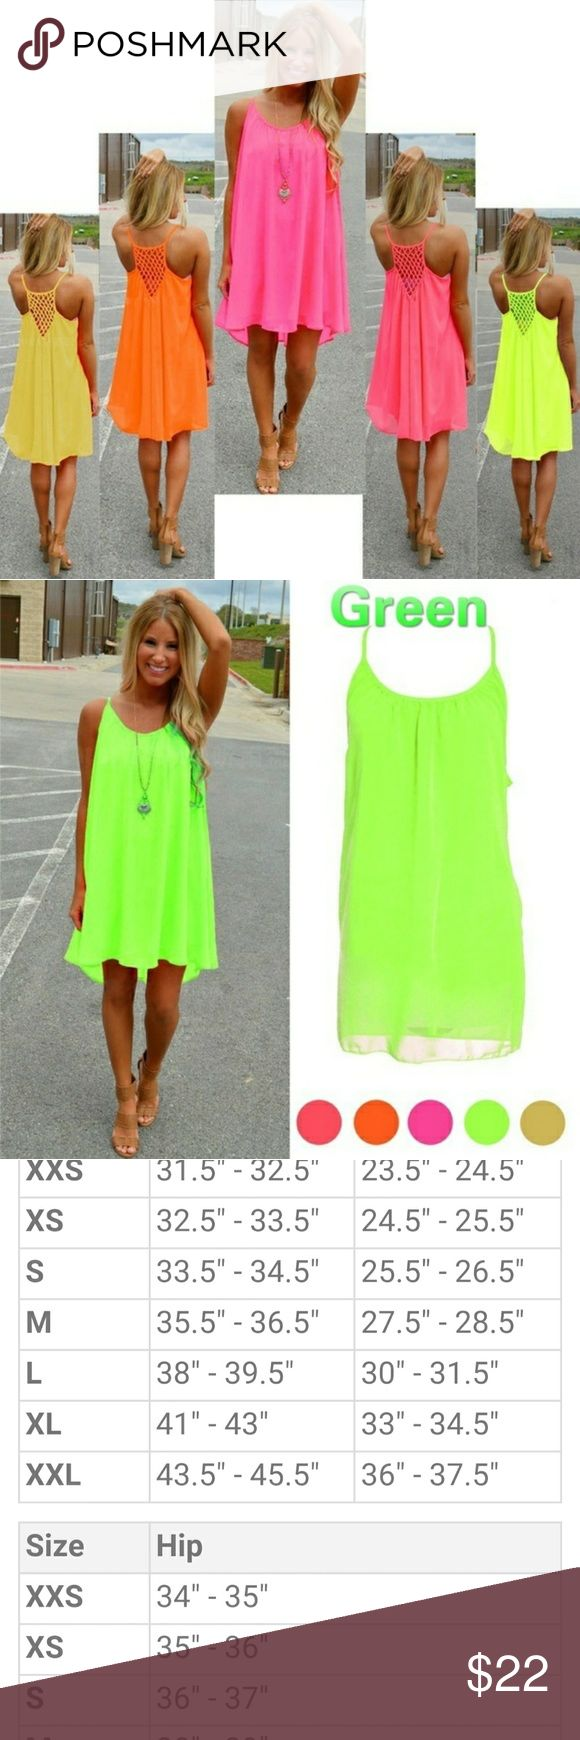 Beautiful neon green beach dress!!! Neon flowy dress...a little sheer perfect for bathing suit cover up Dresses